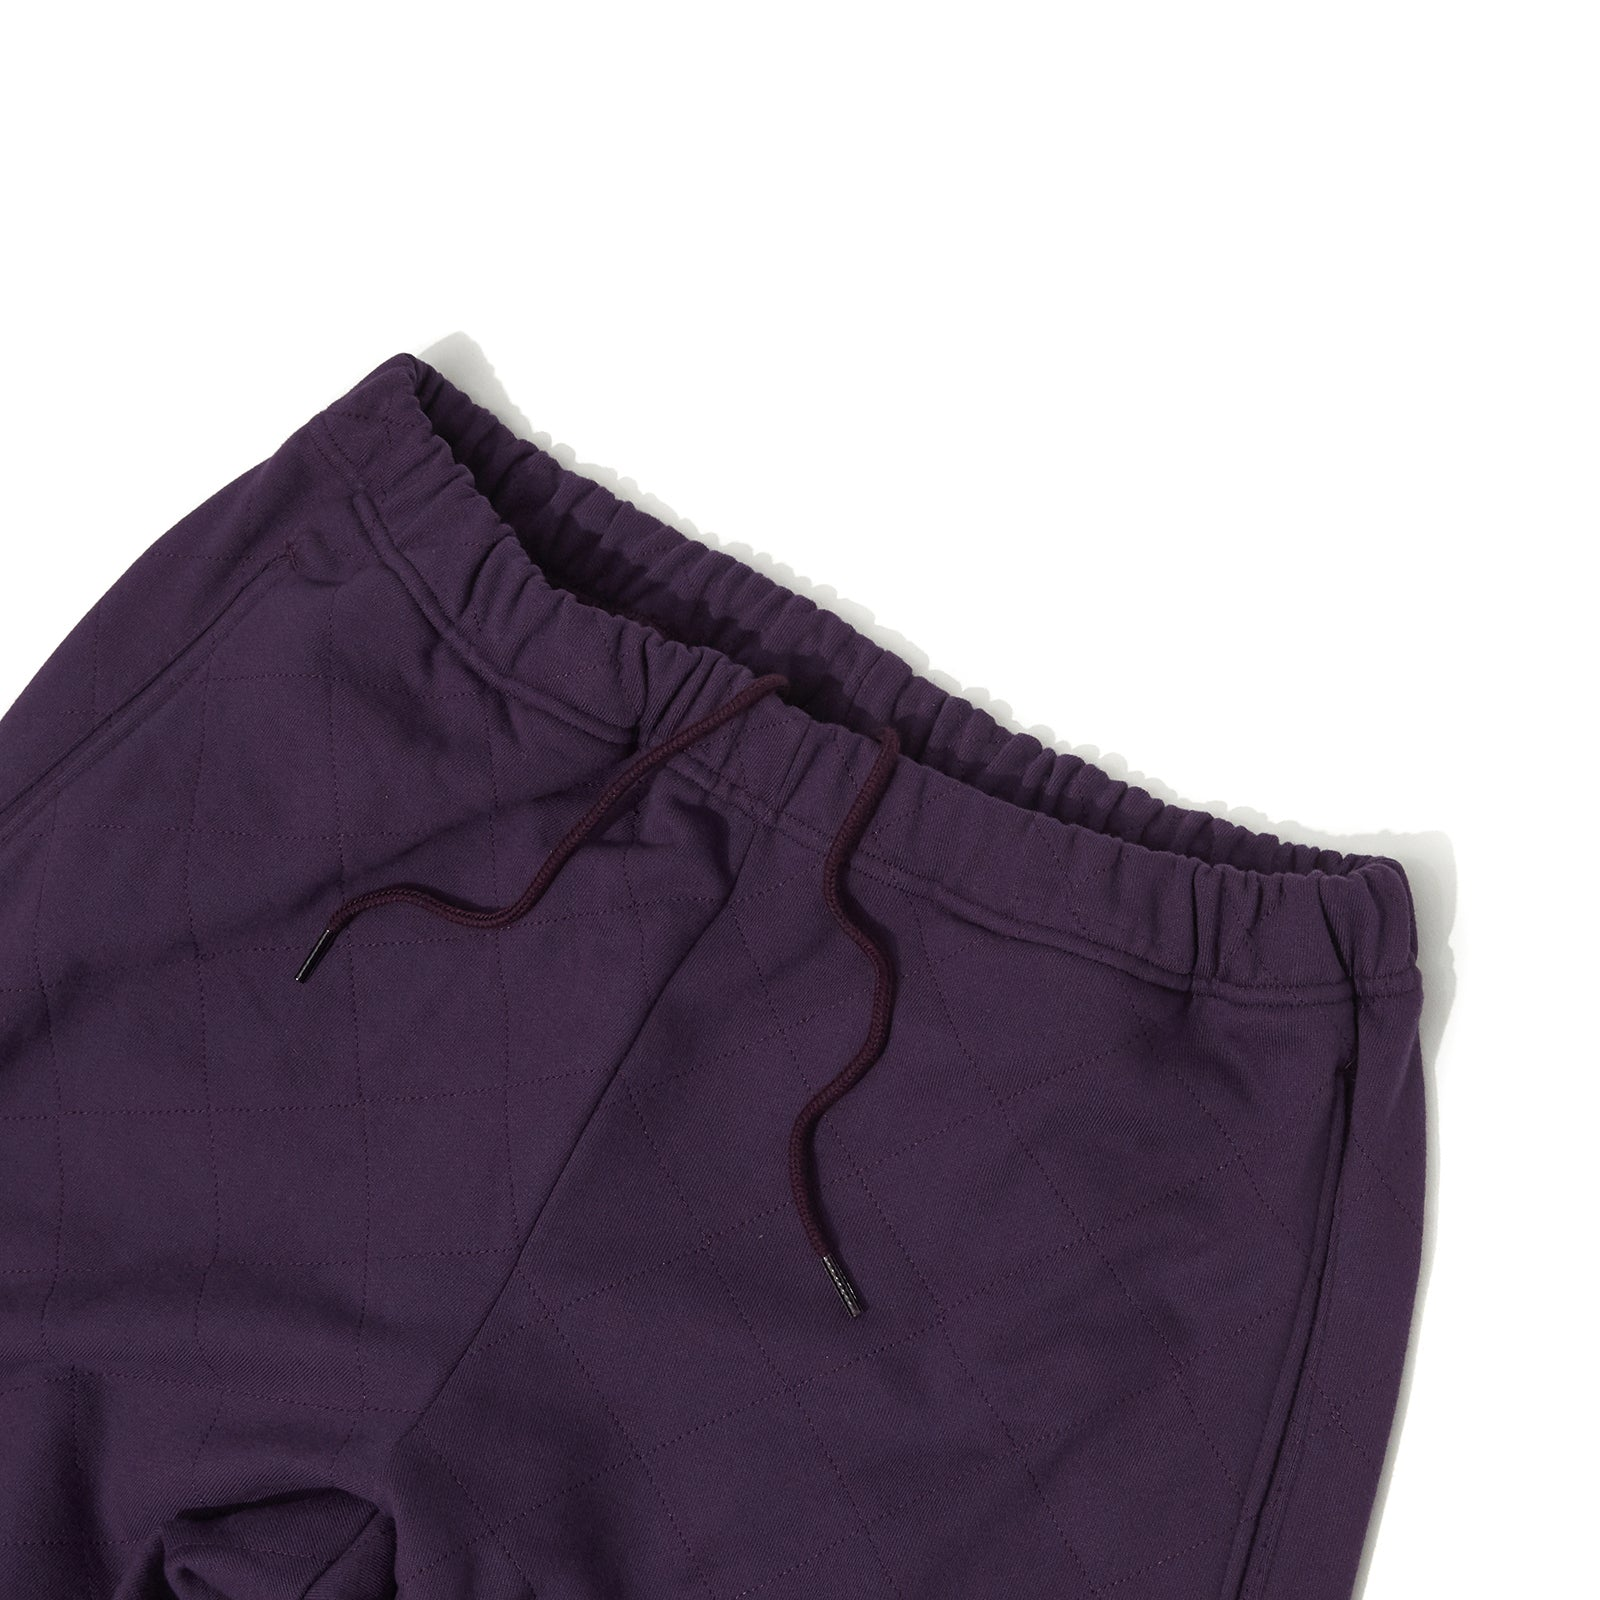 QUILTIED SWEAT PANTS (PURPLE)